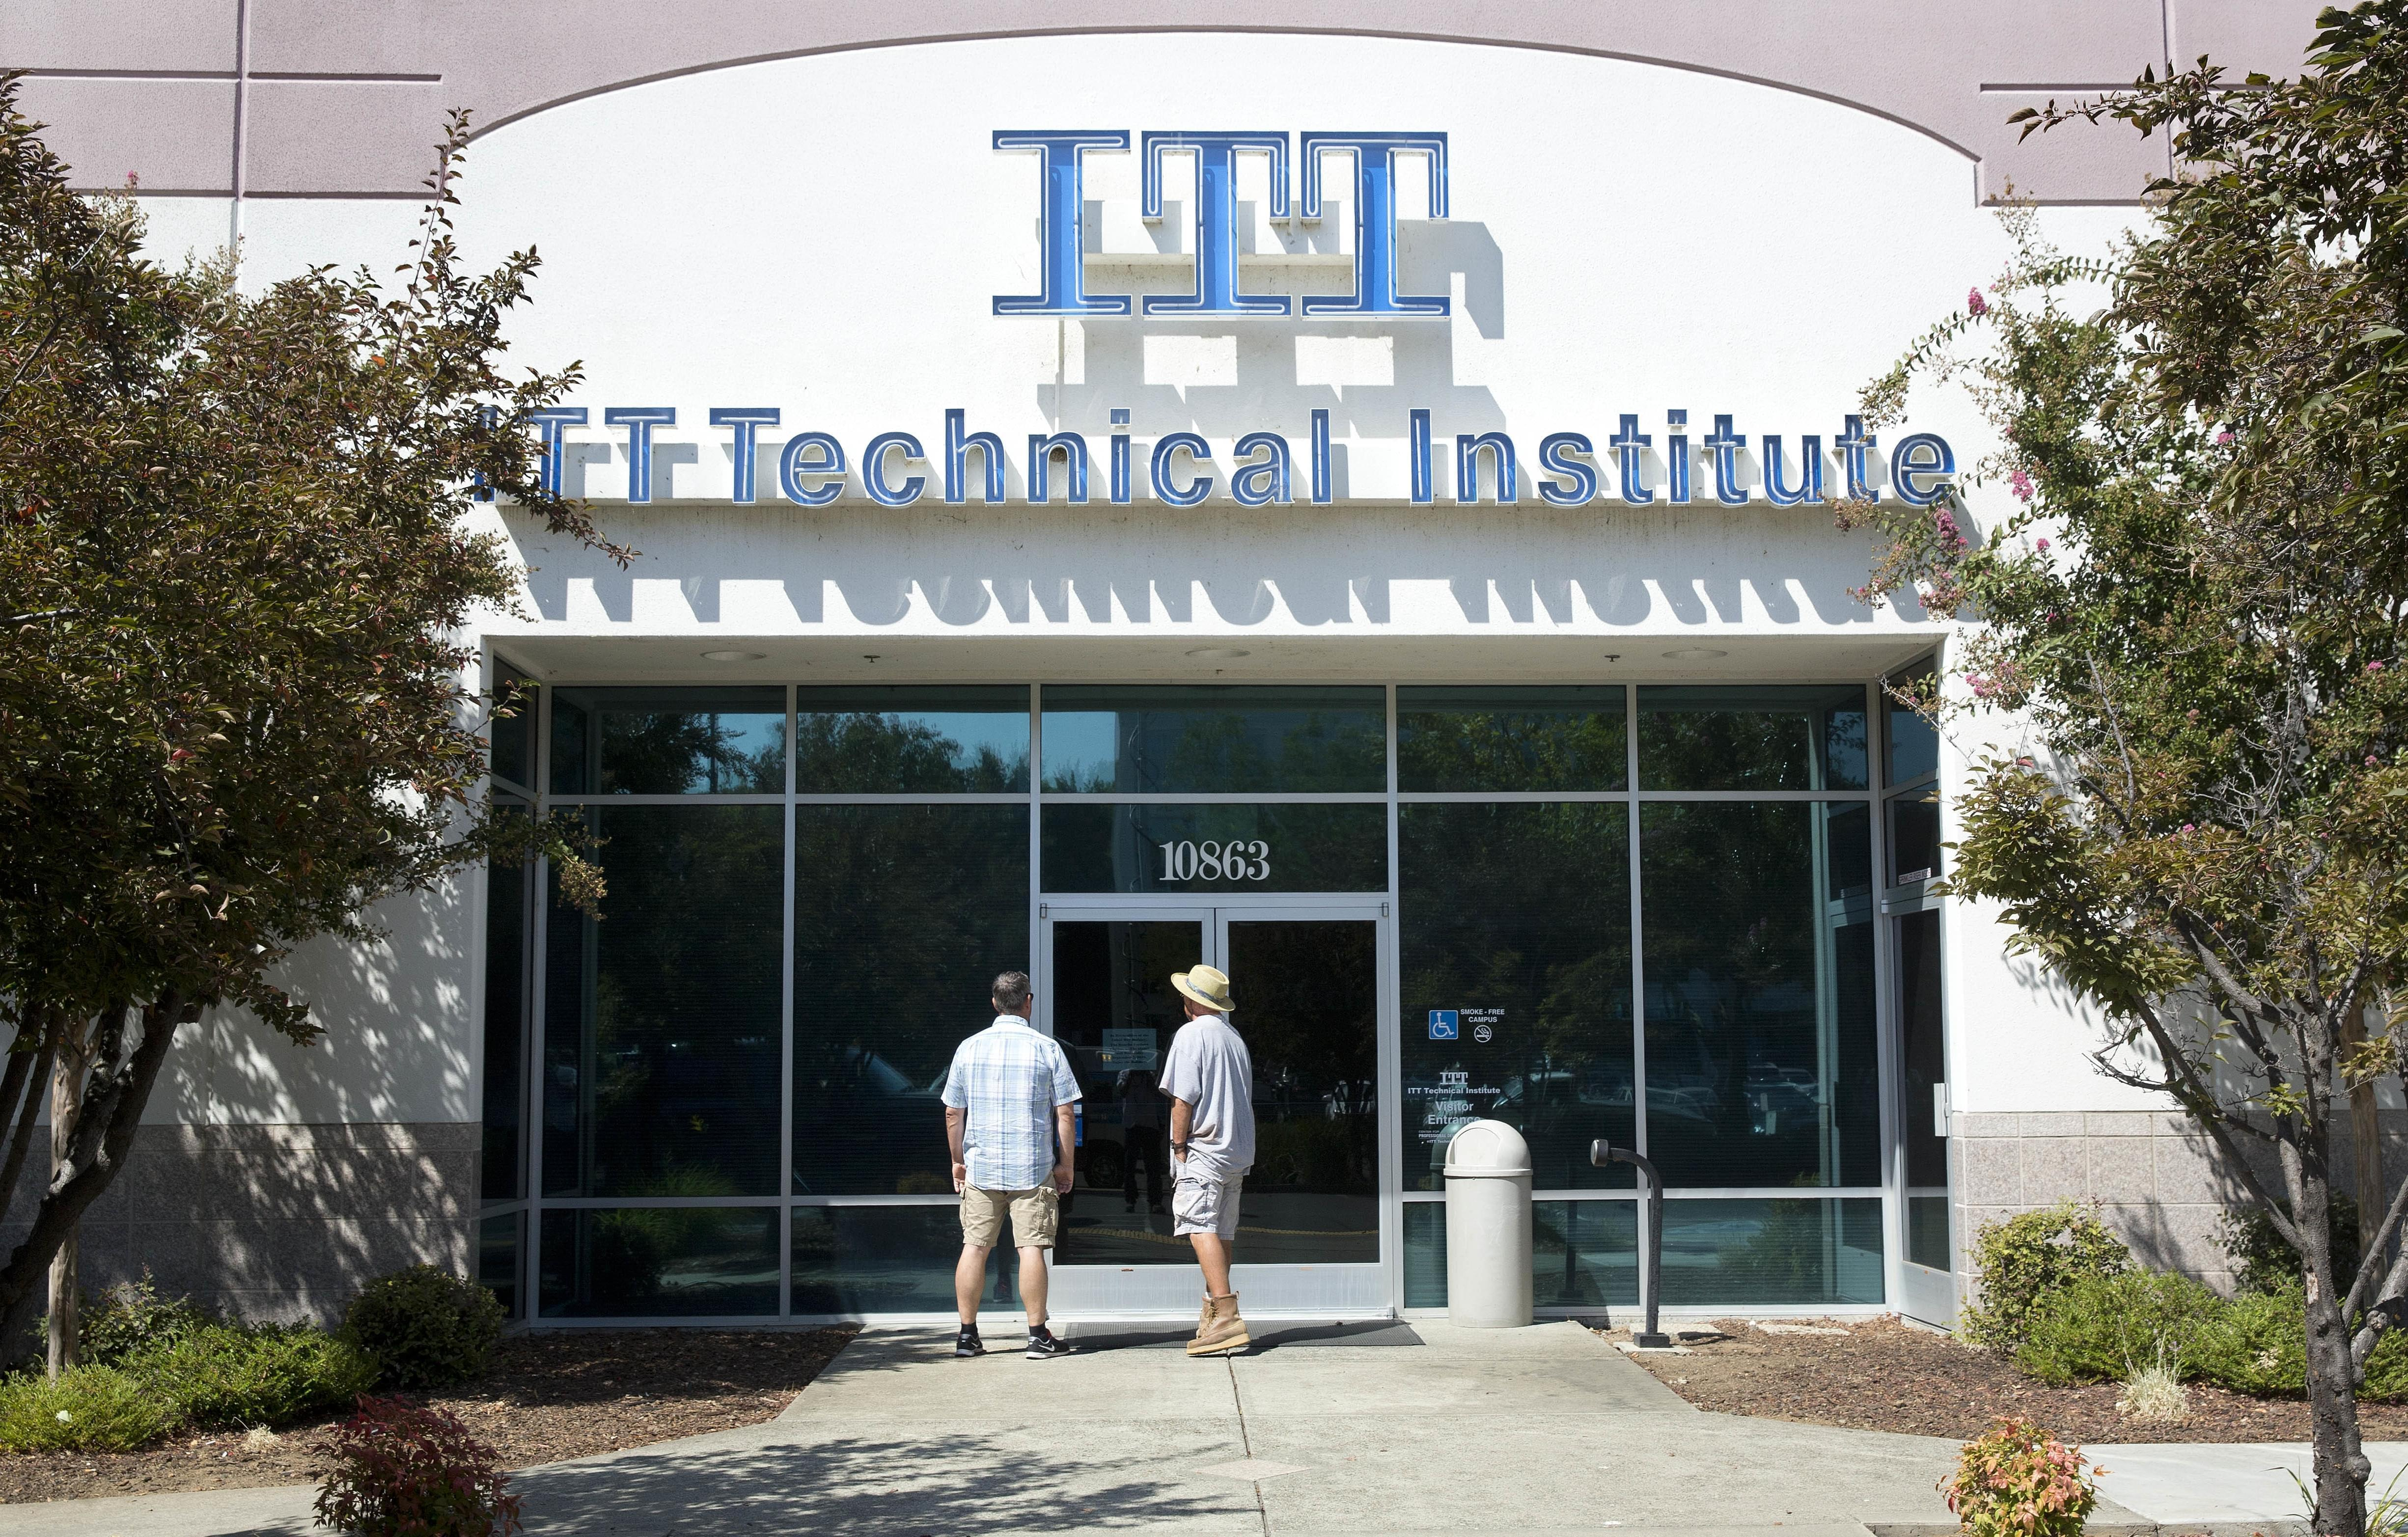 Harold Poling, left, and Ted Weisenberger found the doors to the ITT Technical Institute campus closed after ITT Educational Services announced that the school had ceased operating, Tuesday, Sept. 6.